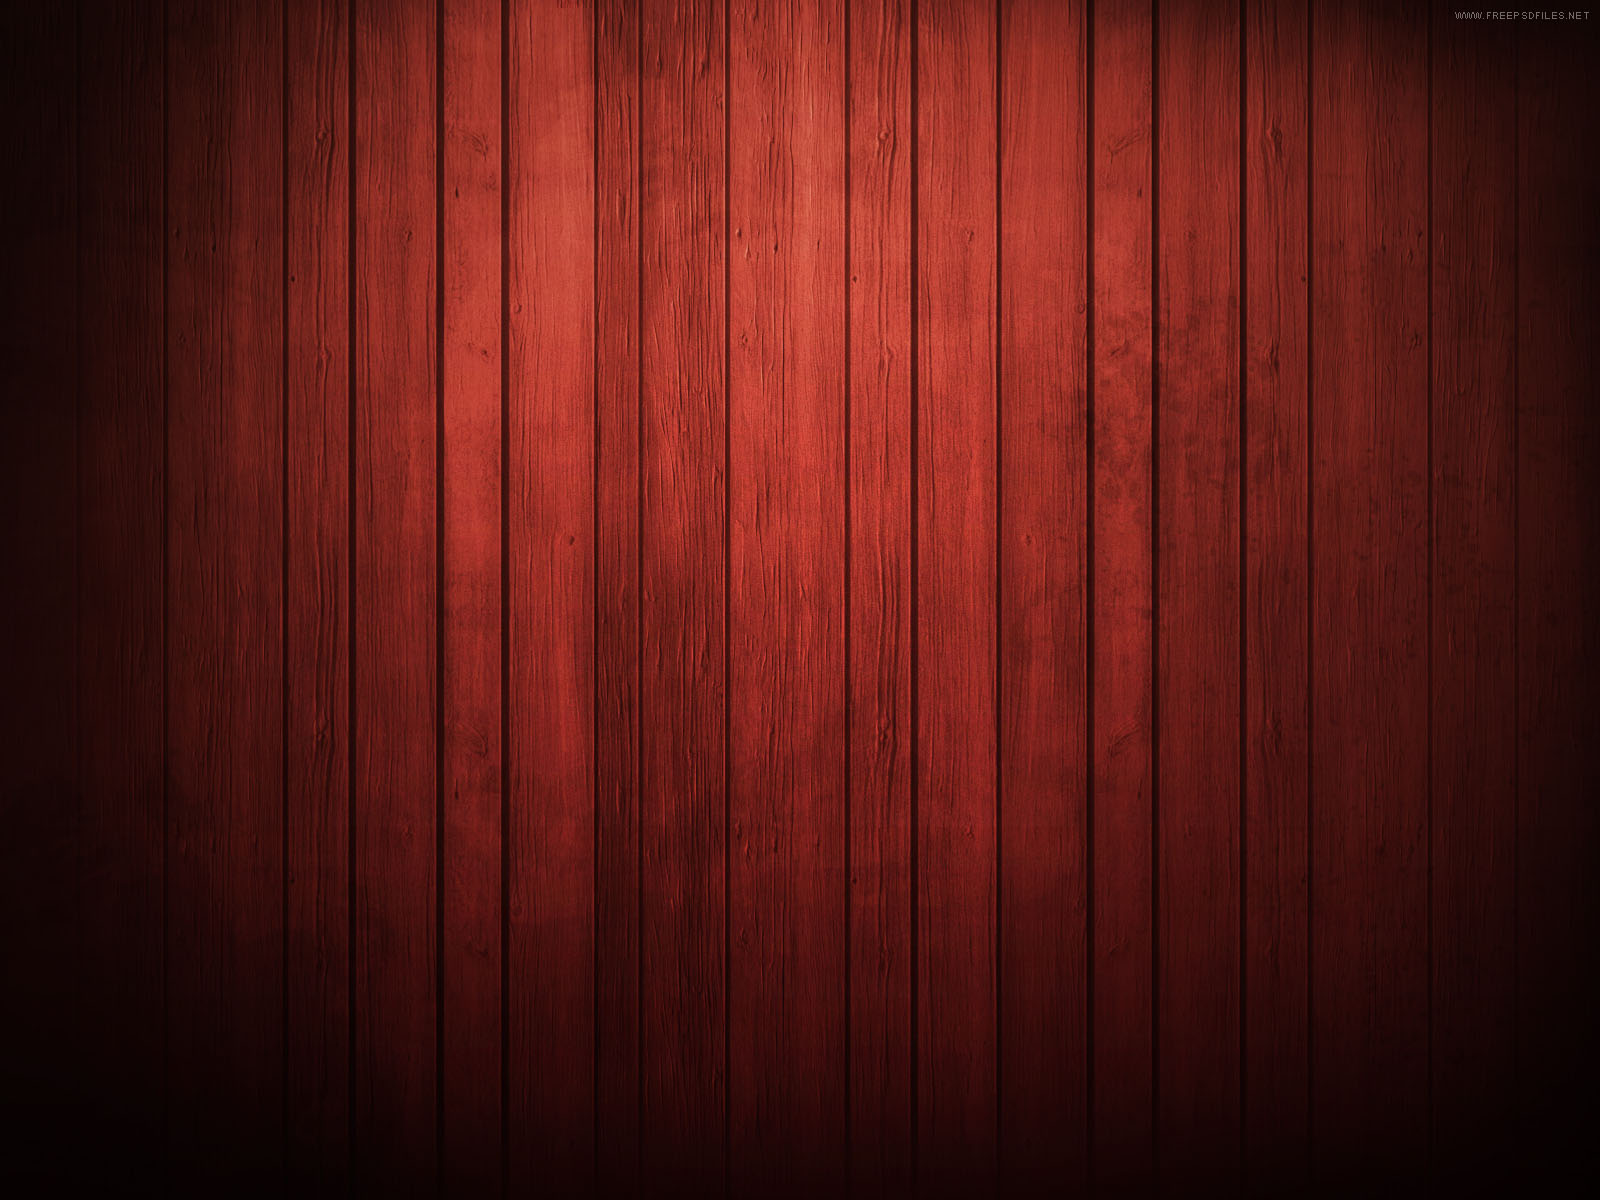 Wood Background 1600x1200 8   hebusorg   High Definition Wallpapers 1600x1200